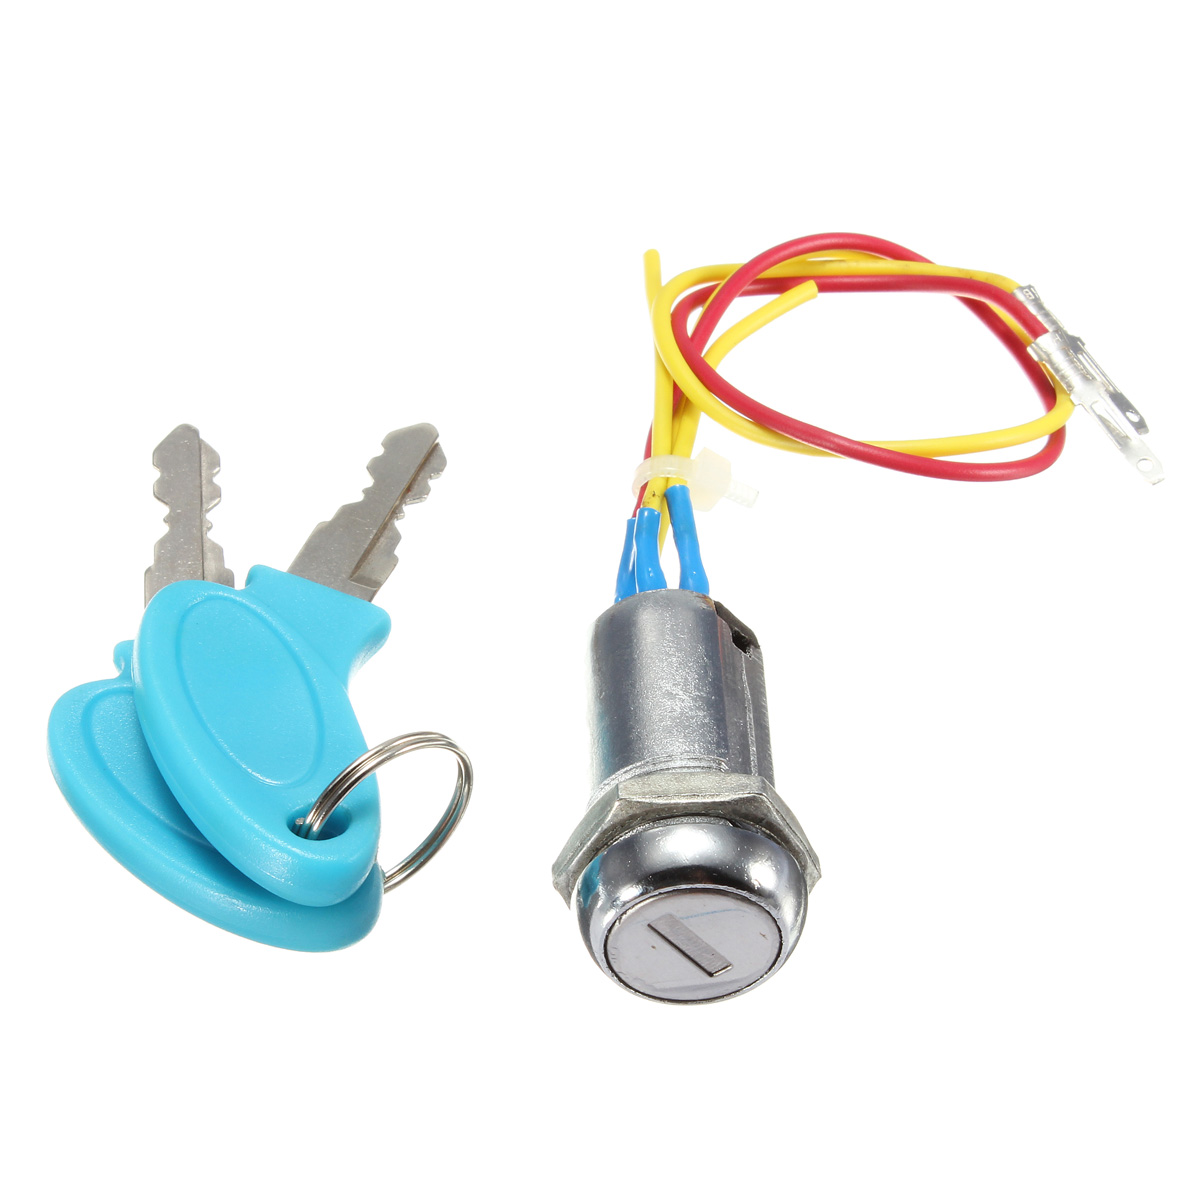 Blue Ignition Switch Lock Electric Mobility Scooter Bike Part Replacement+2